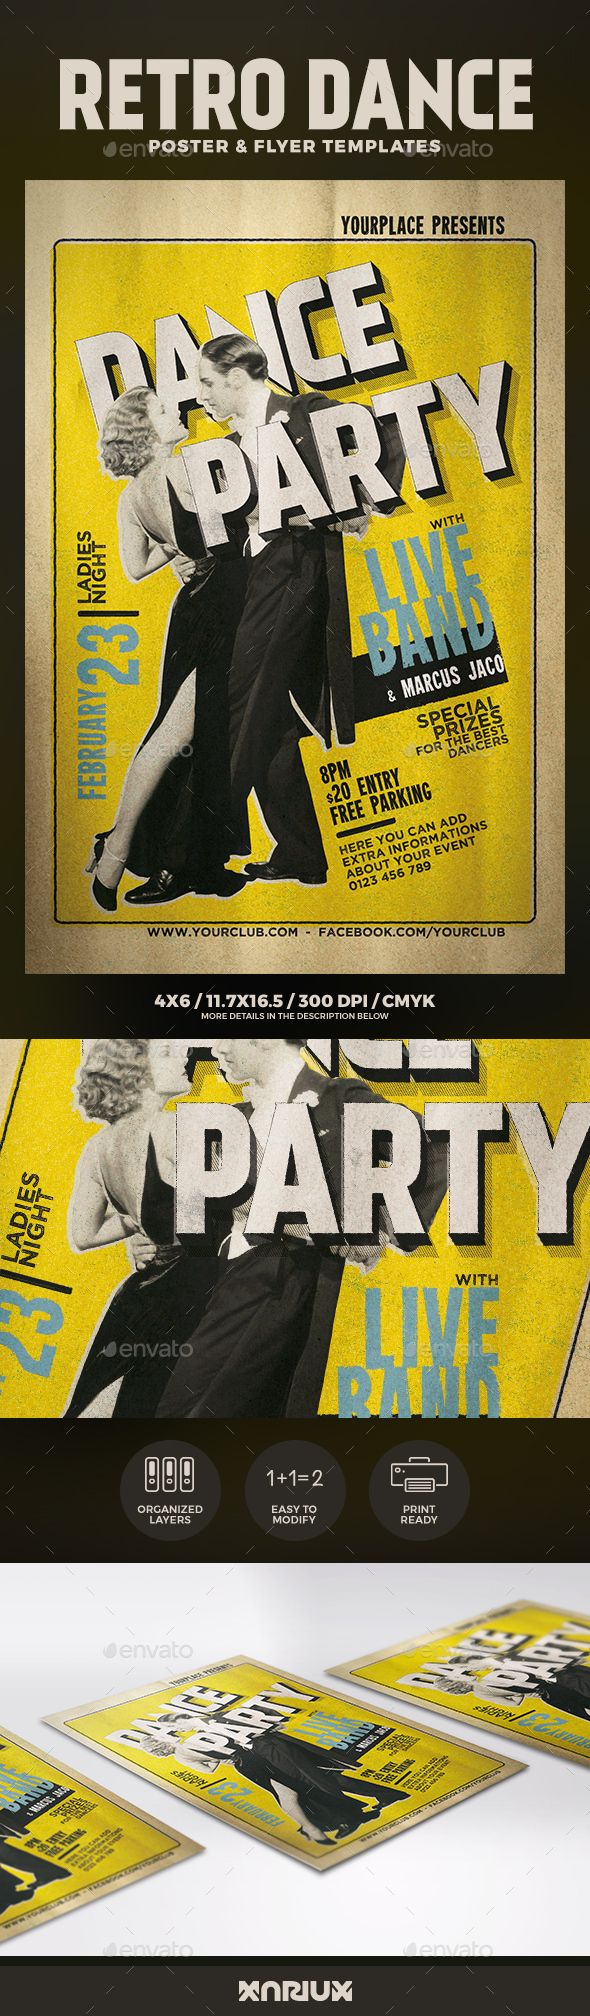 Retro Dance Flyer and Poster Template PSD